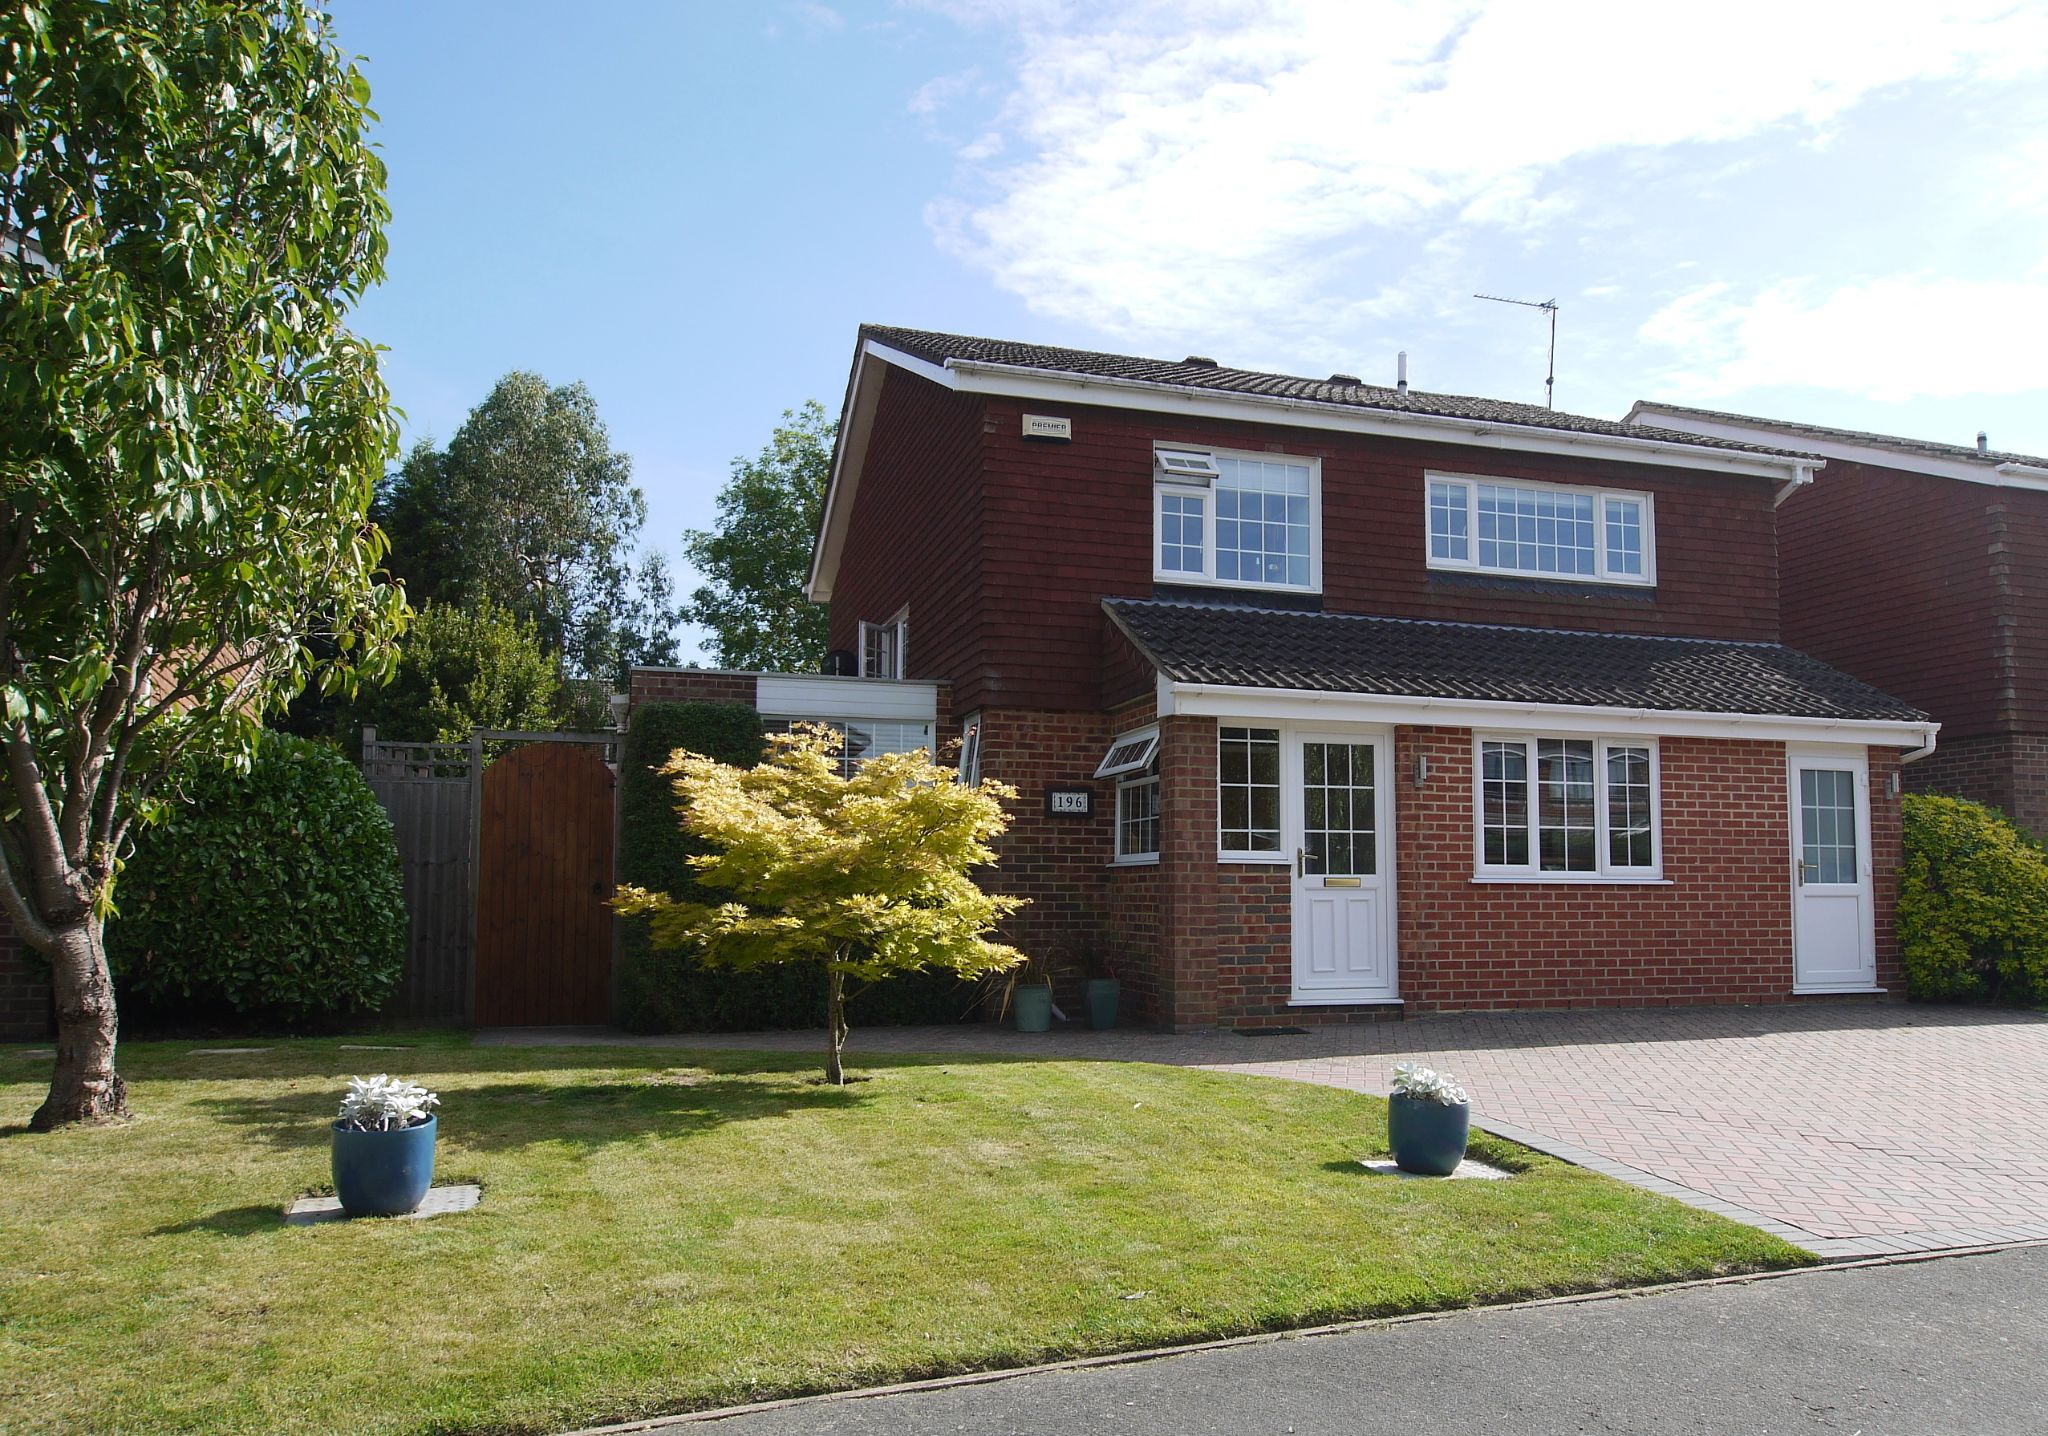 4 bedroom detached house Sold in Sevenoaks - Photograph 1